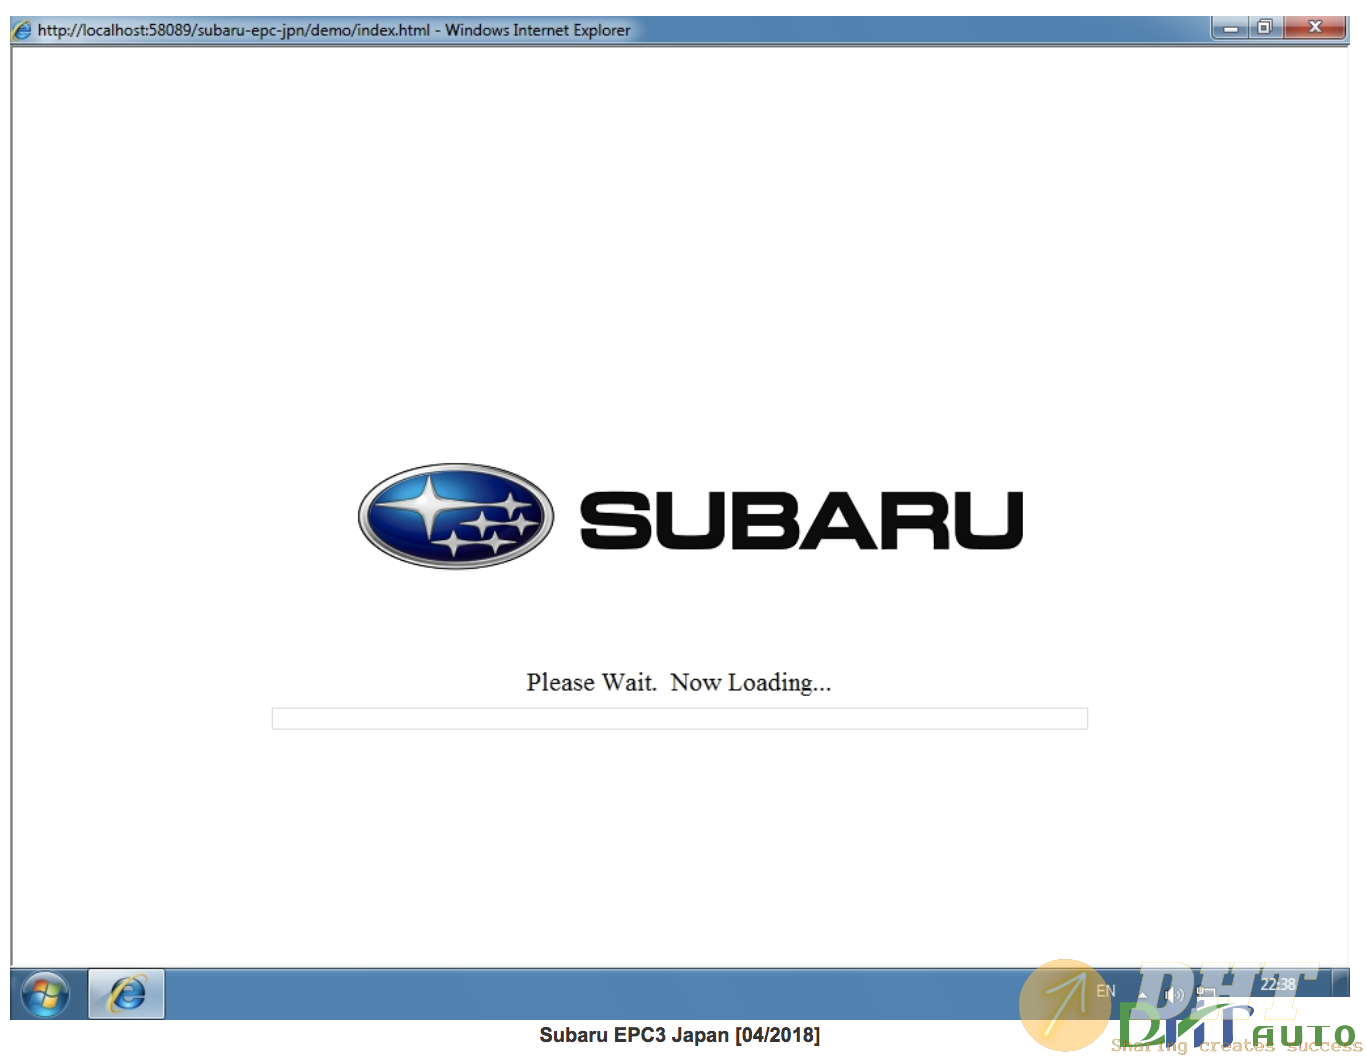 Subaru-Japan-EPC3-Full-Instruction-04-2018-2.png